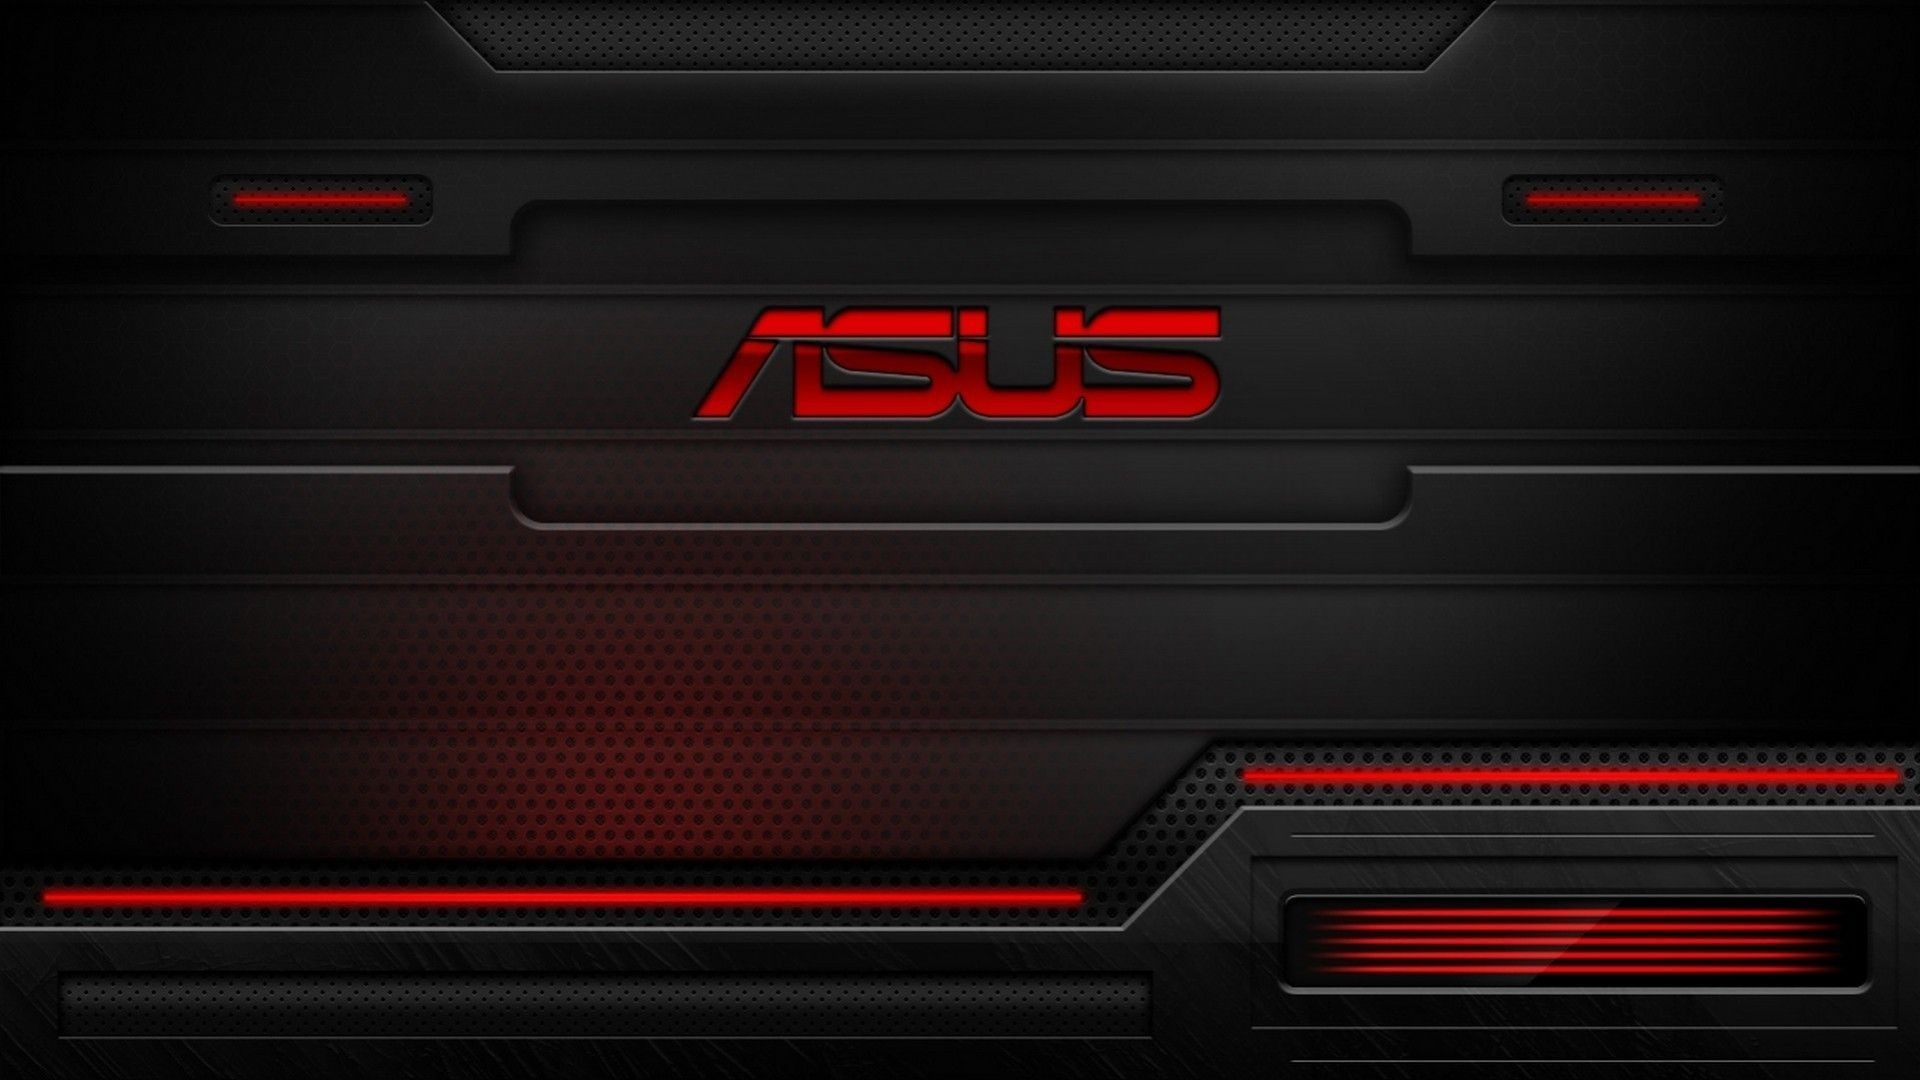 Asus hd desktop wallpaper